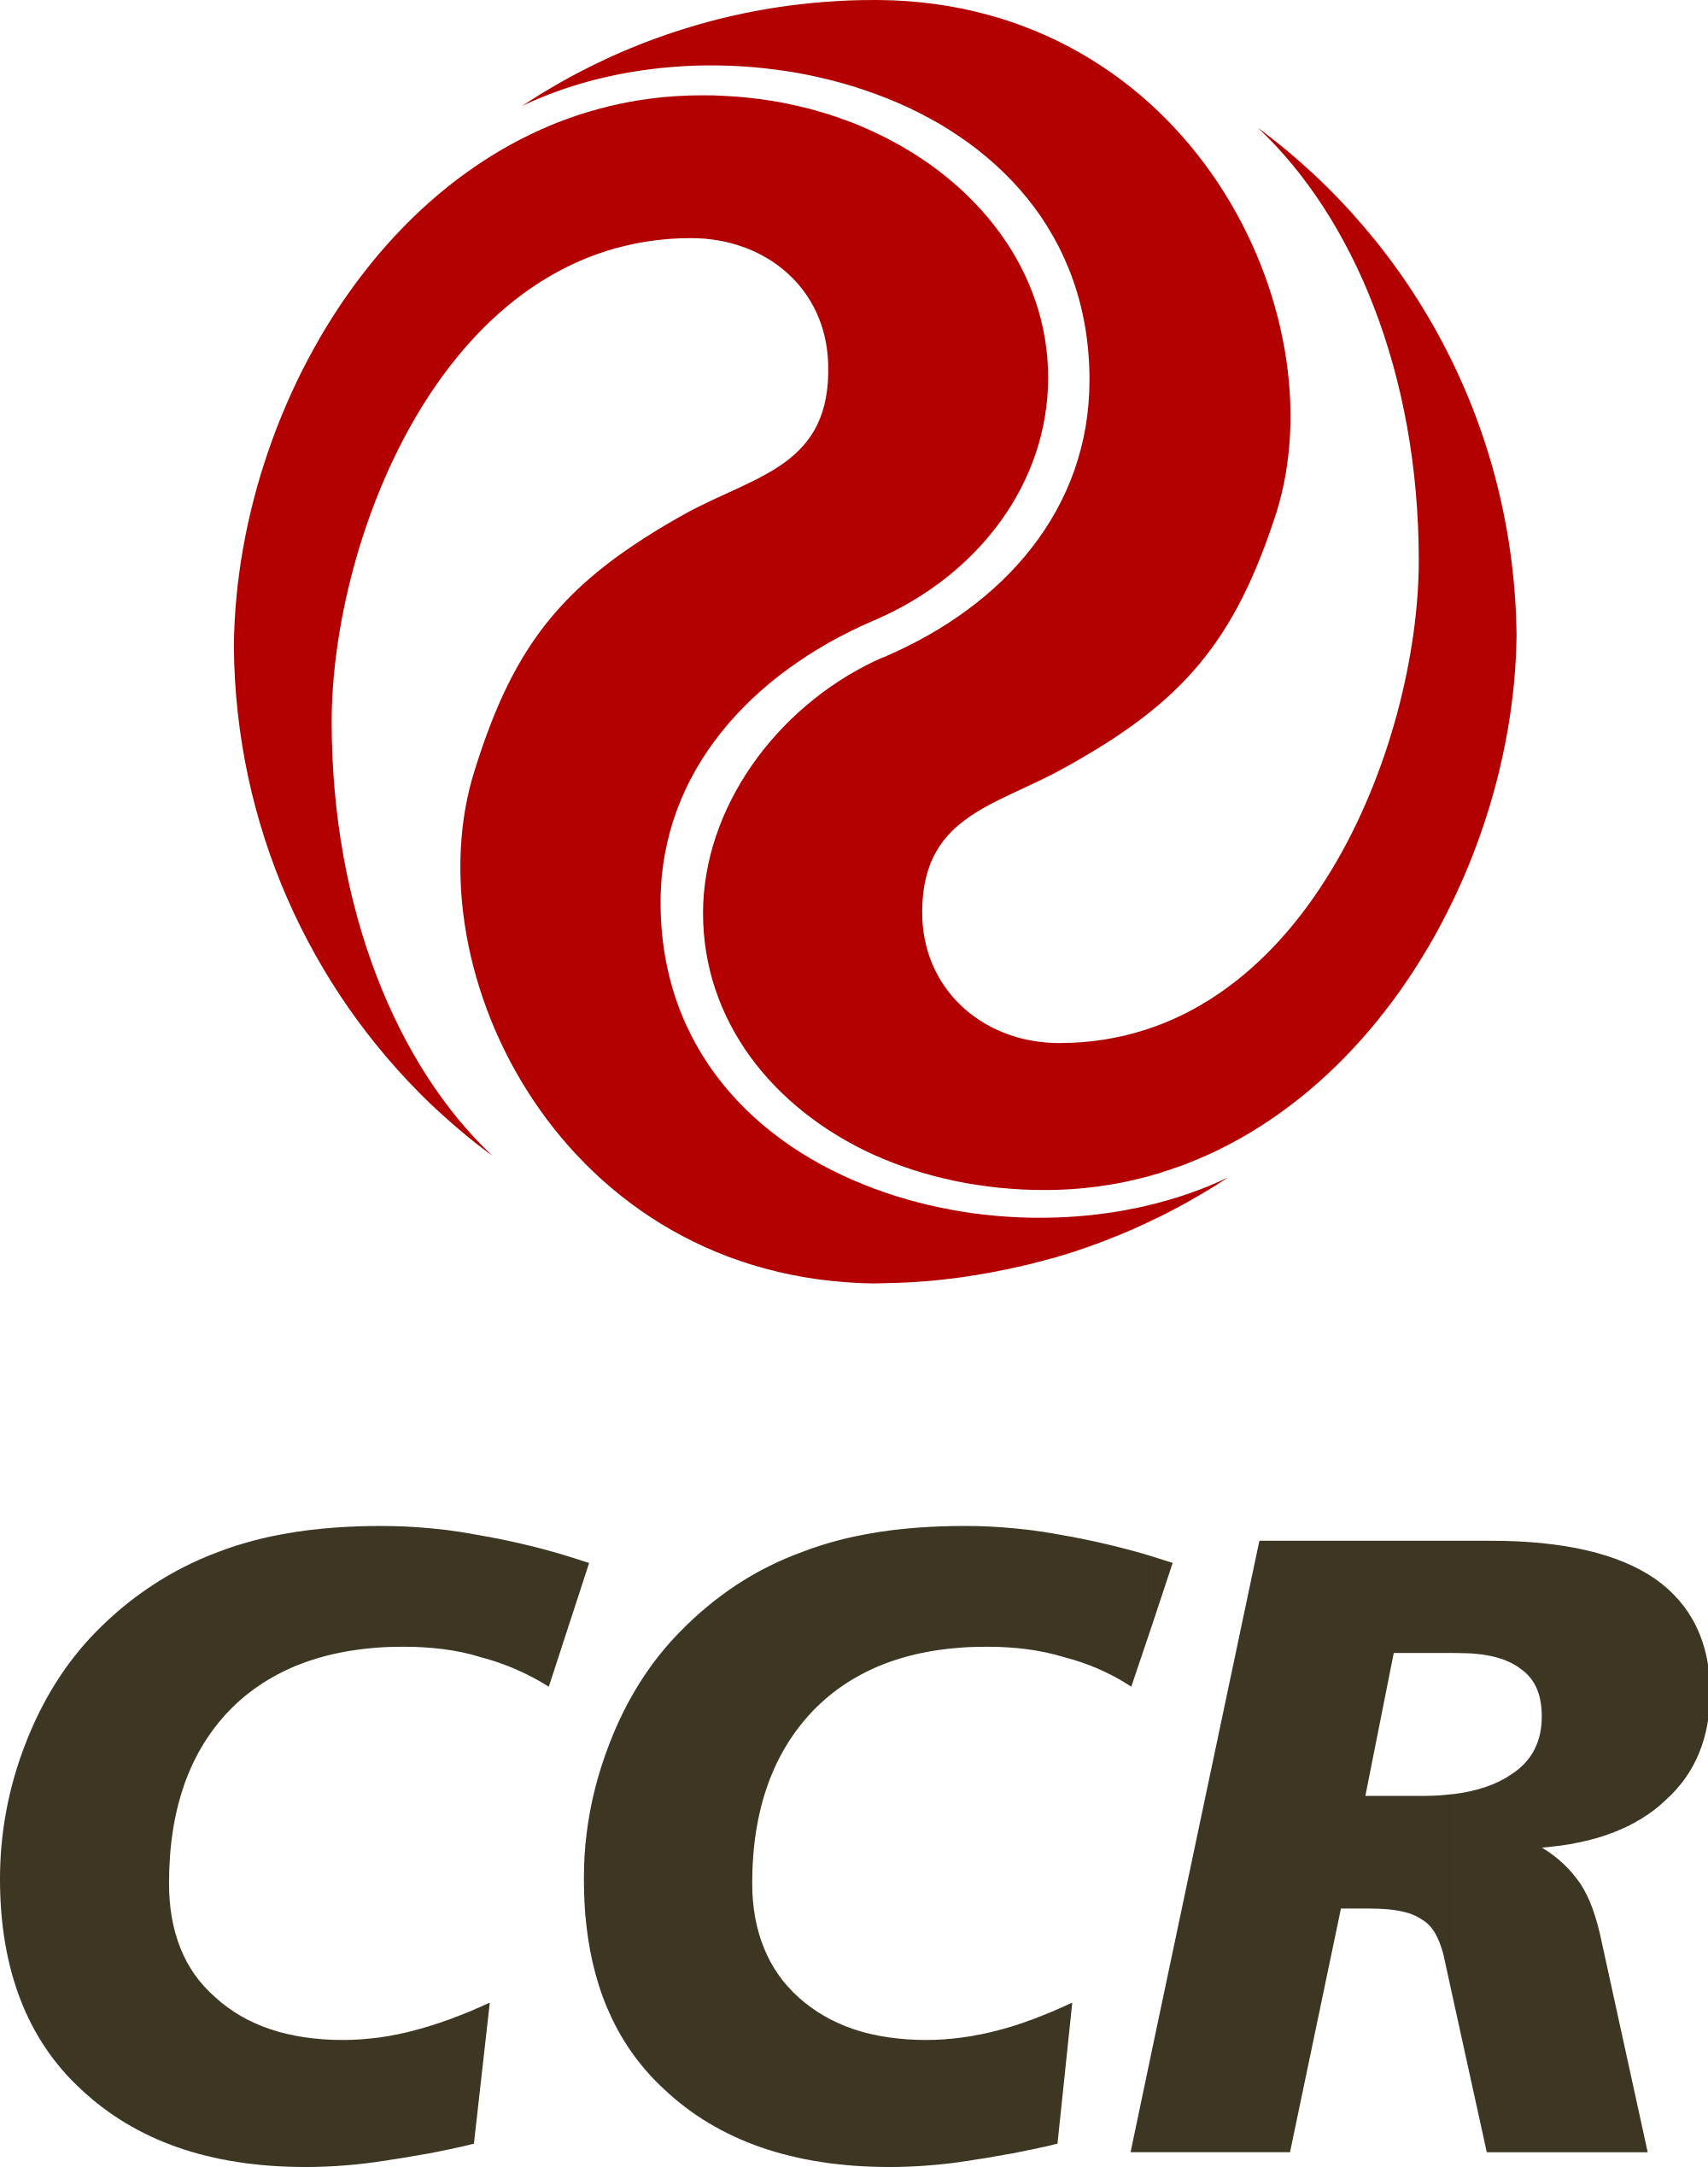 The CCR Group